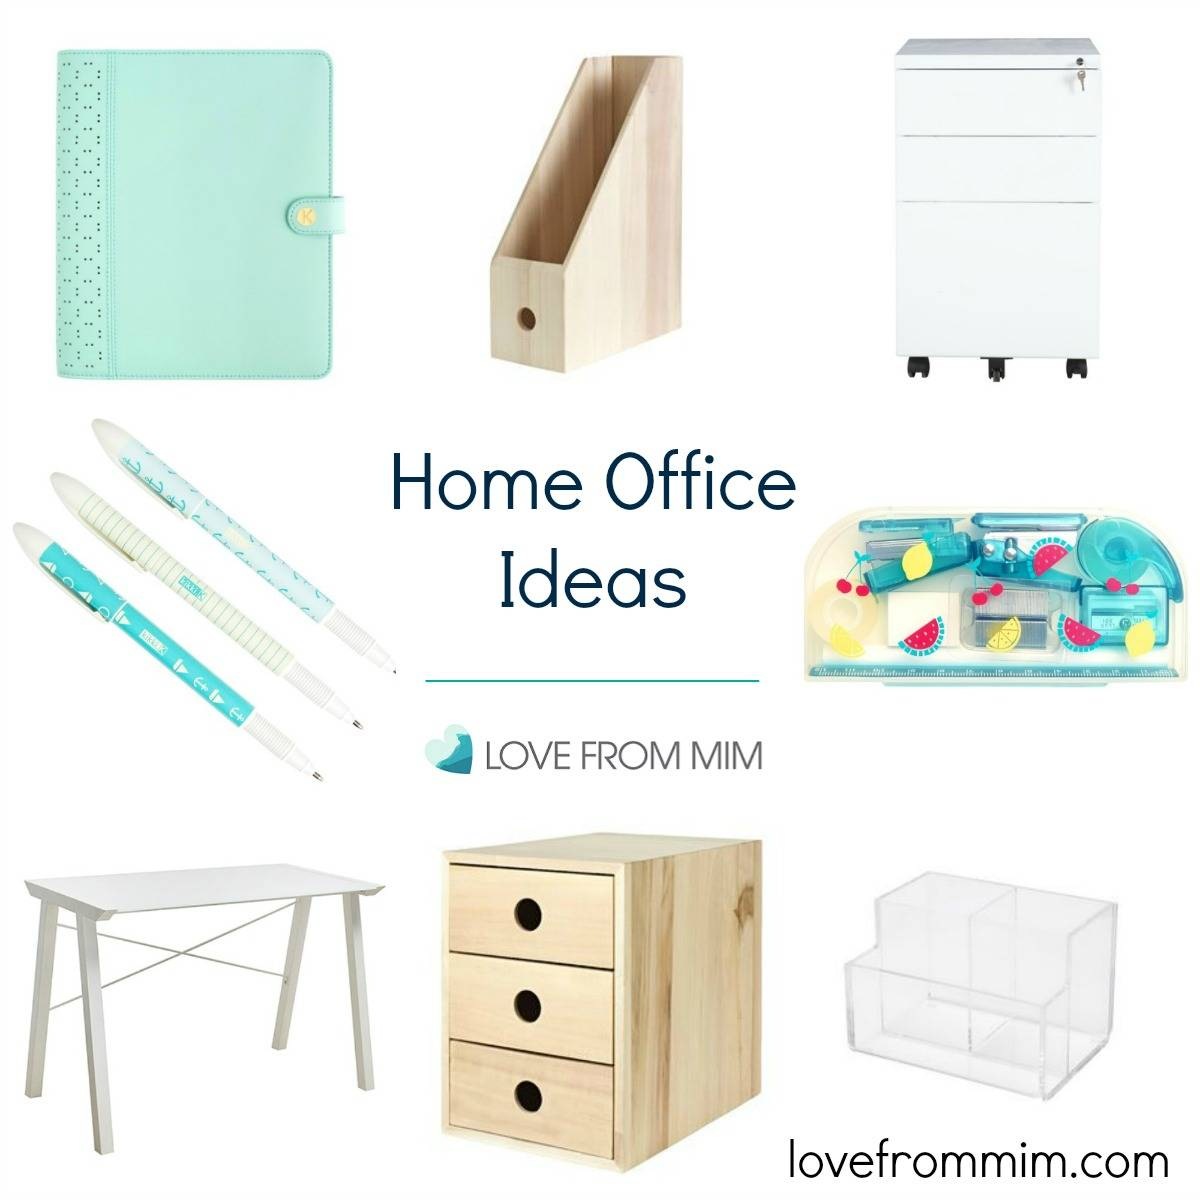 Home Office Ideas - lovefrommim.com Setting up a Home Office Workspace Home Office Decoration